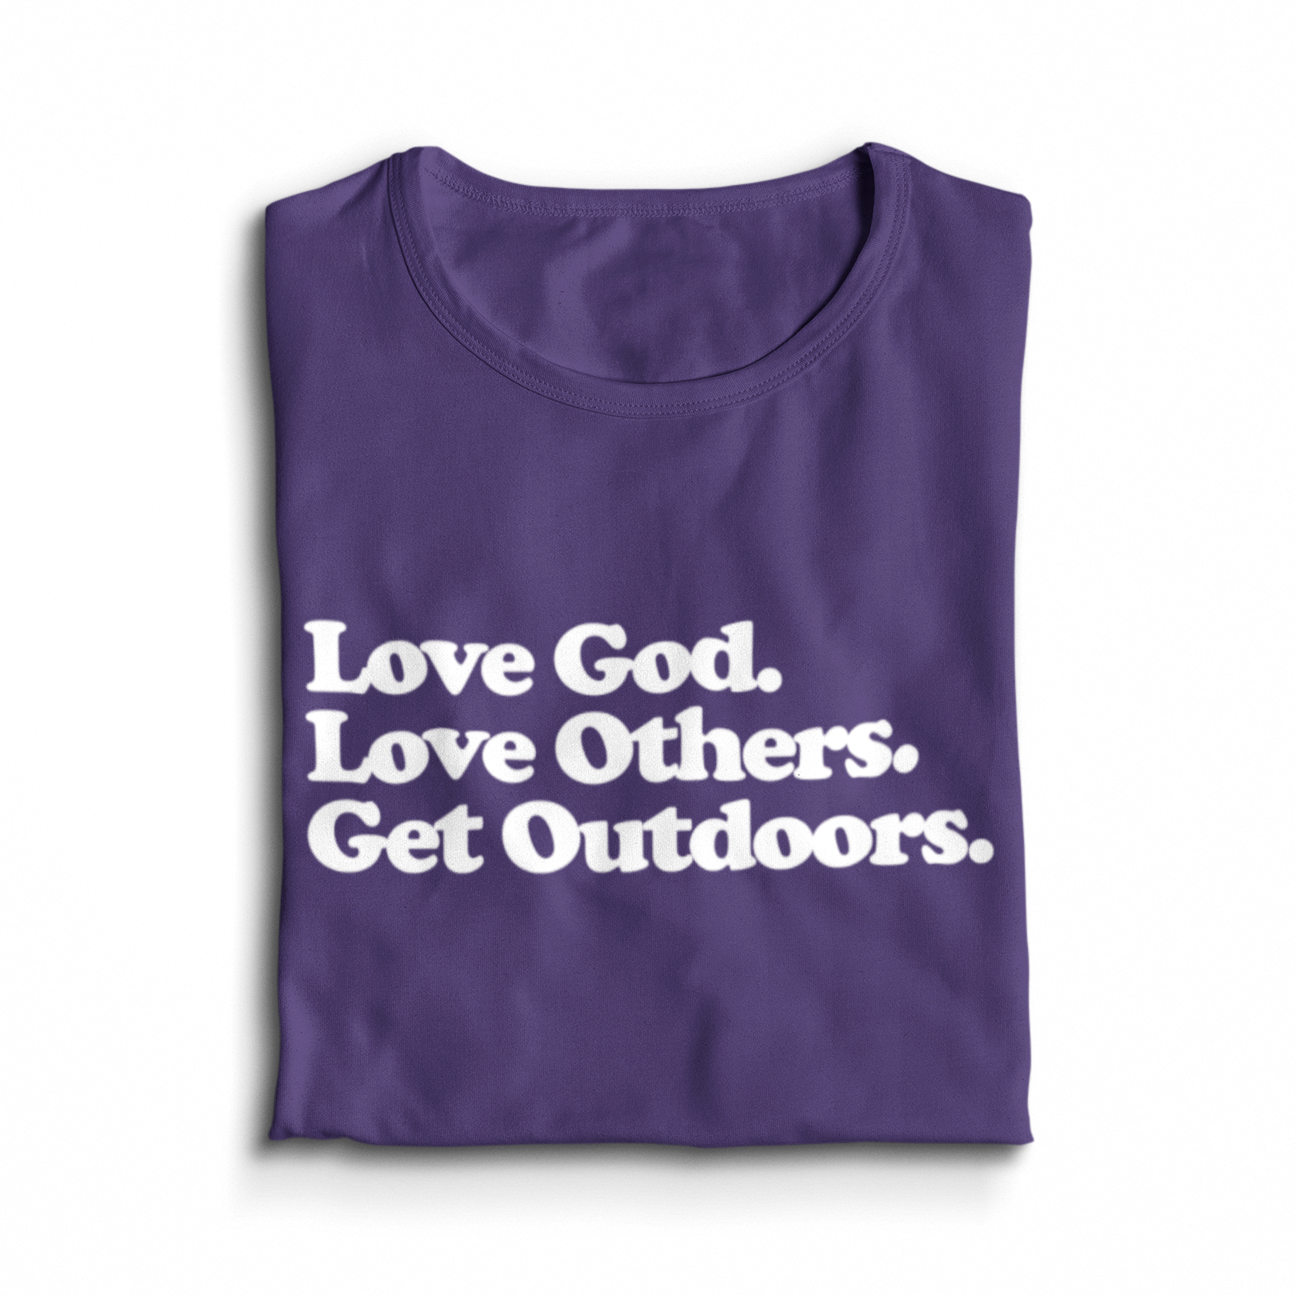 Get Outdoors T-shirt